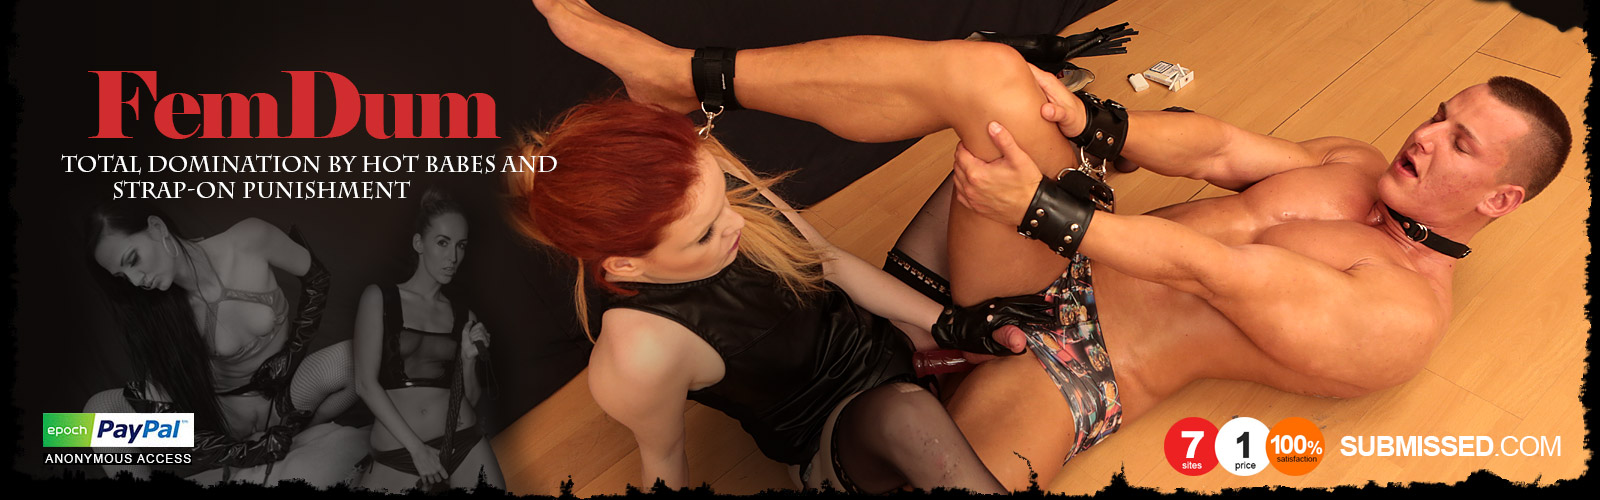 Commit female domination strap on chastity that